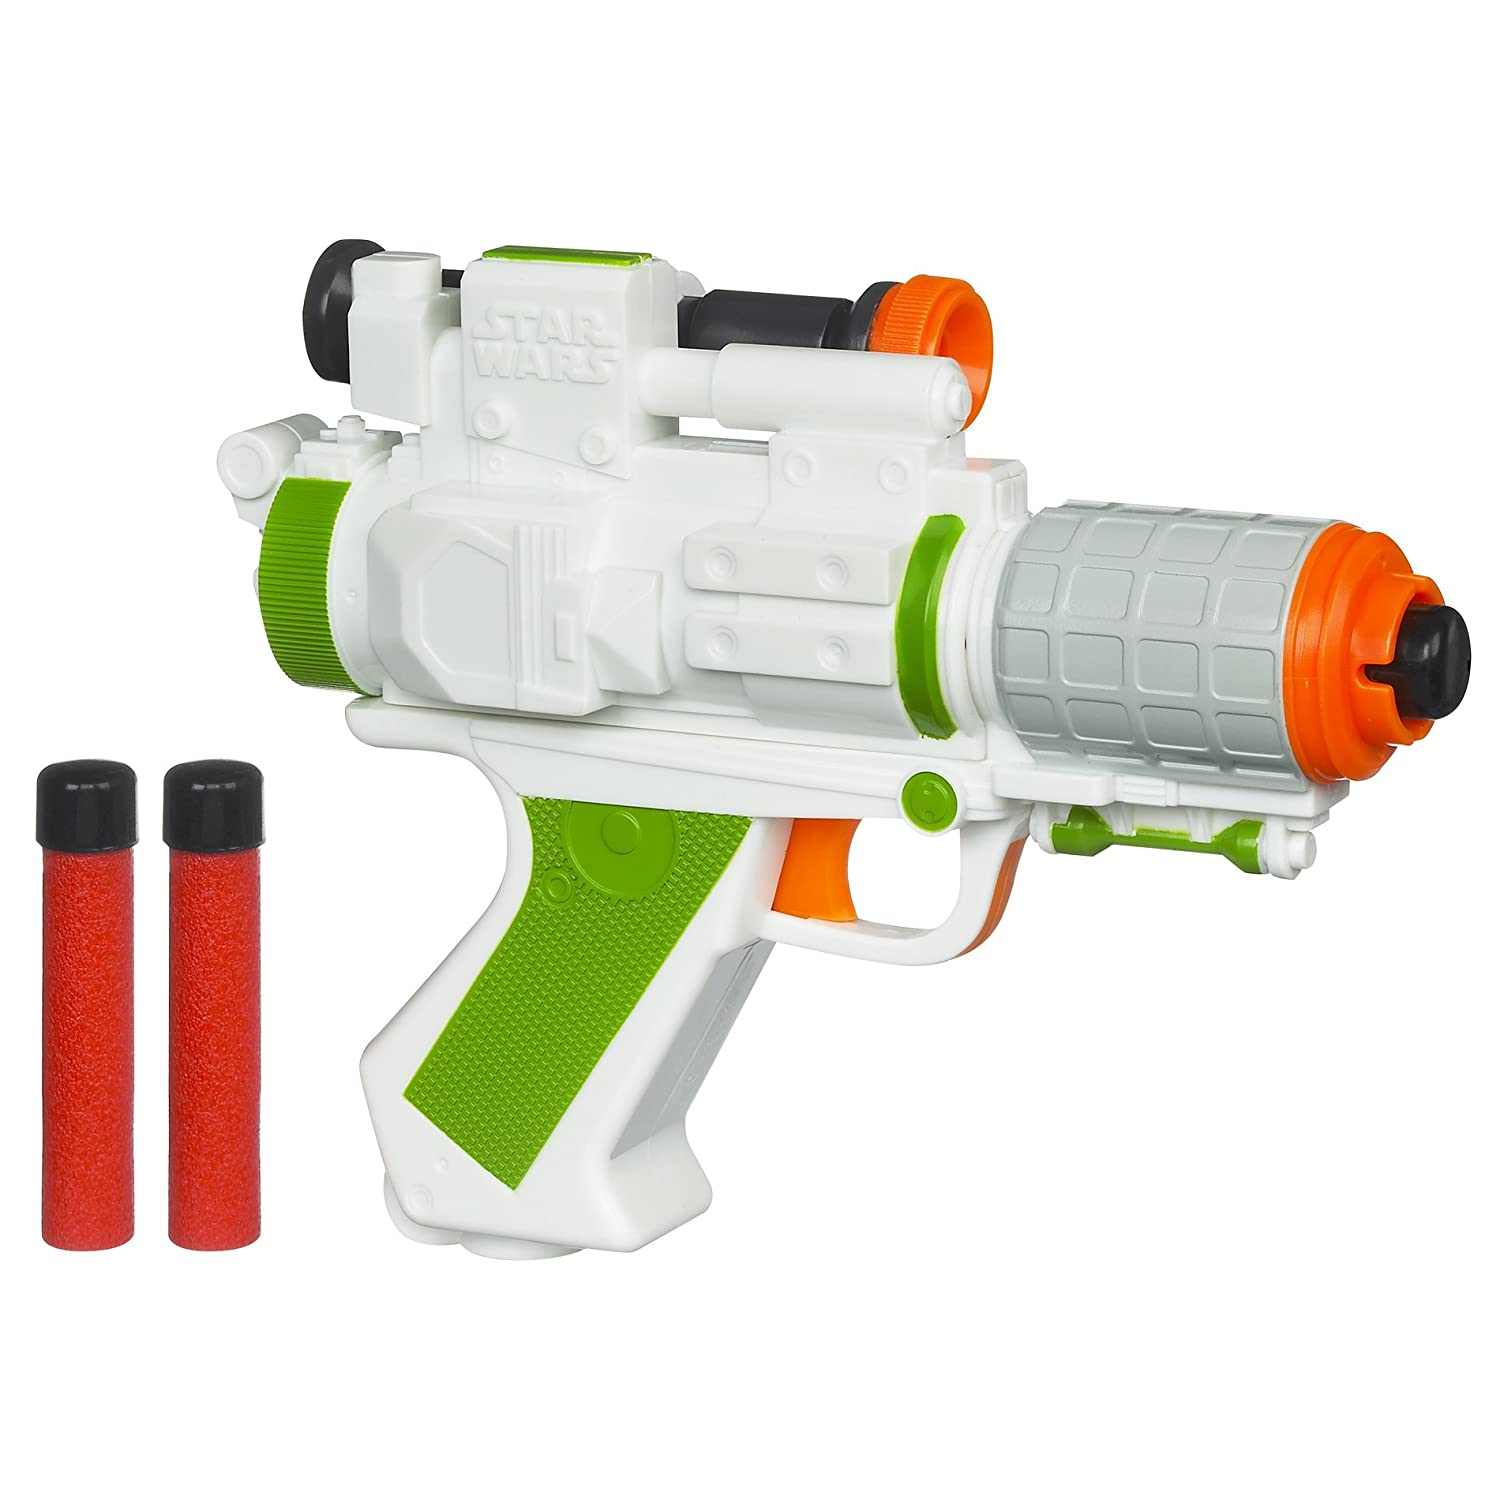 Star Wars Role Play, General Grievous Blaster B0049MPECE